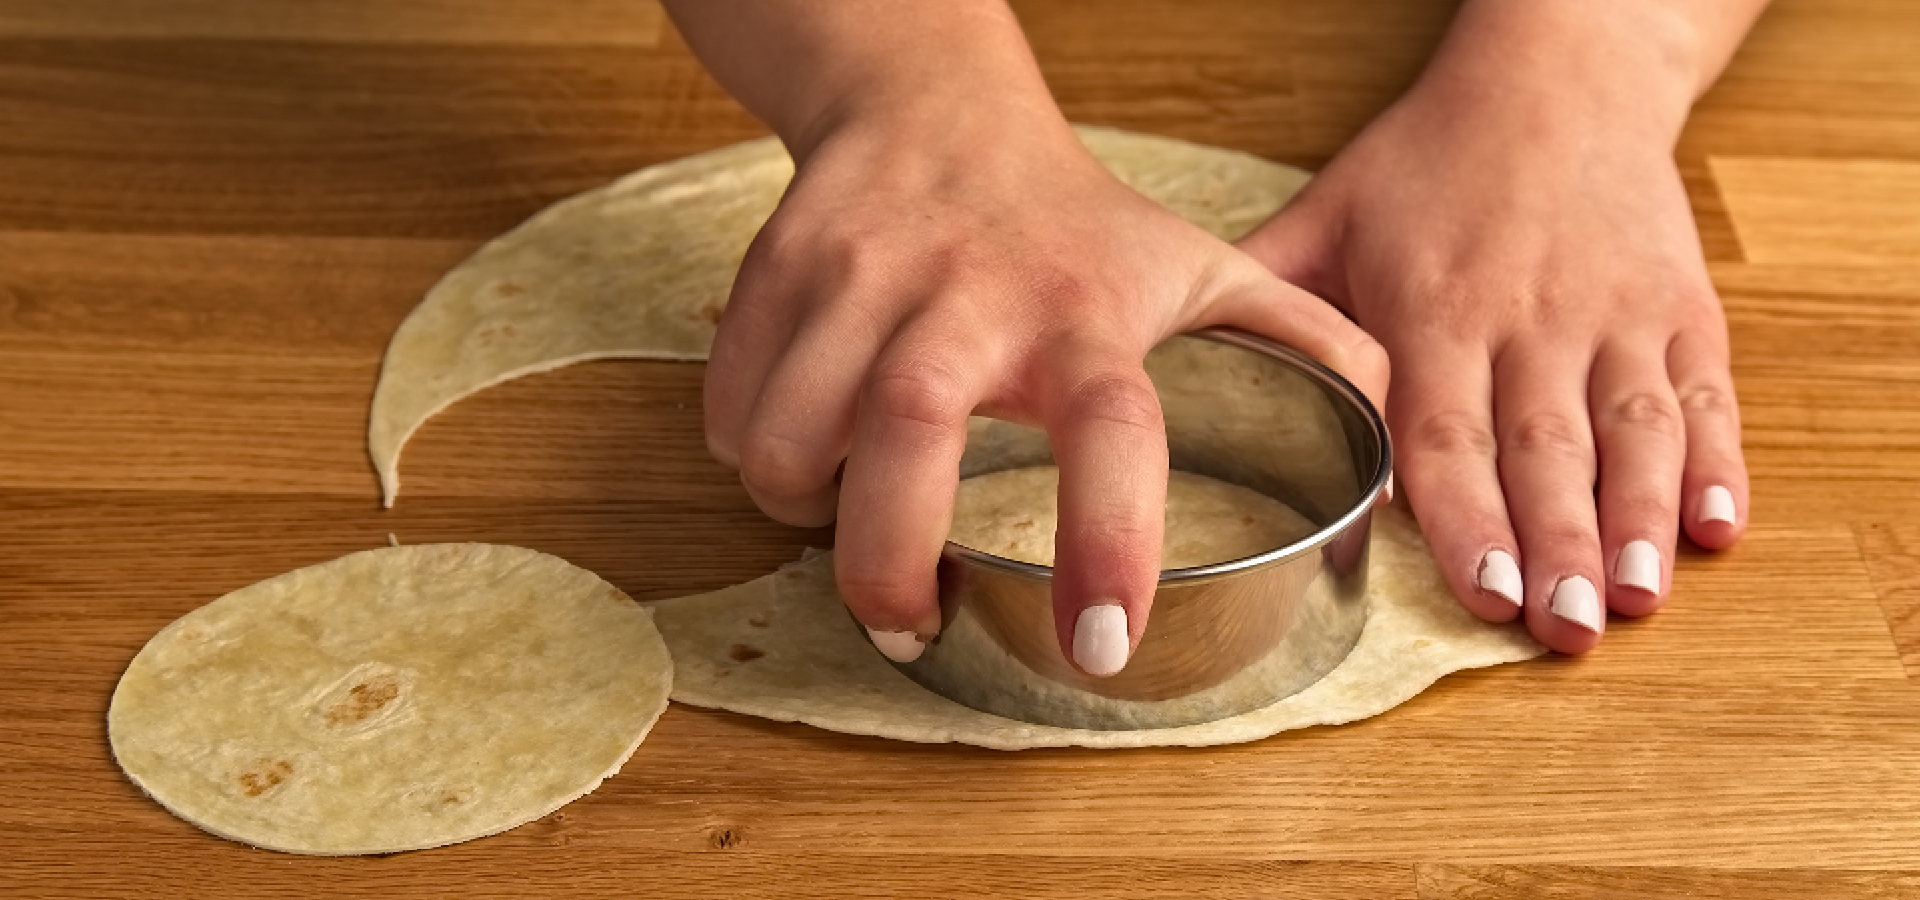 Cut mini rounds from tortillas